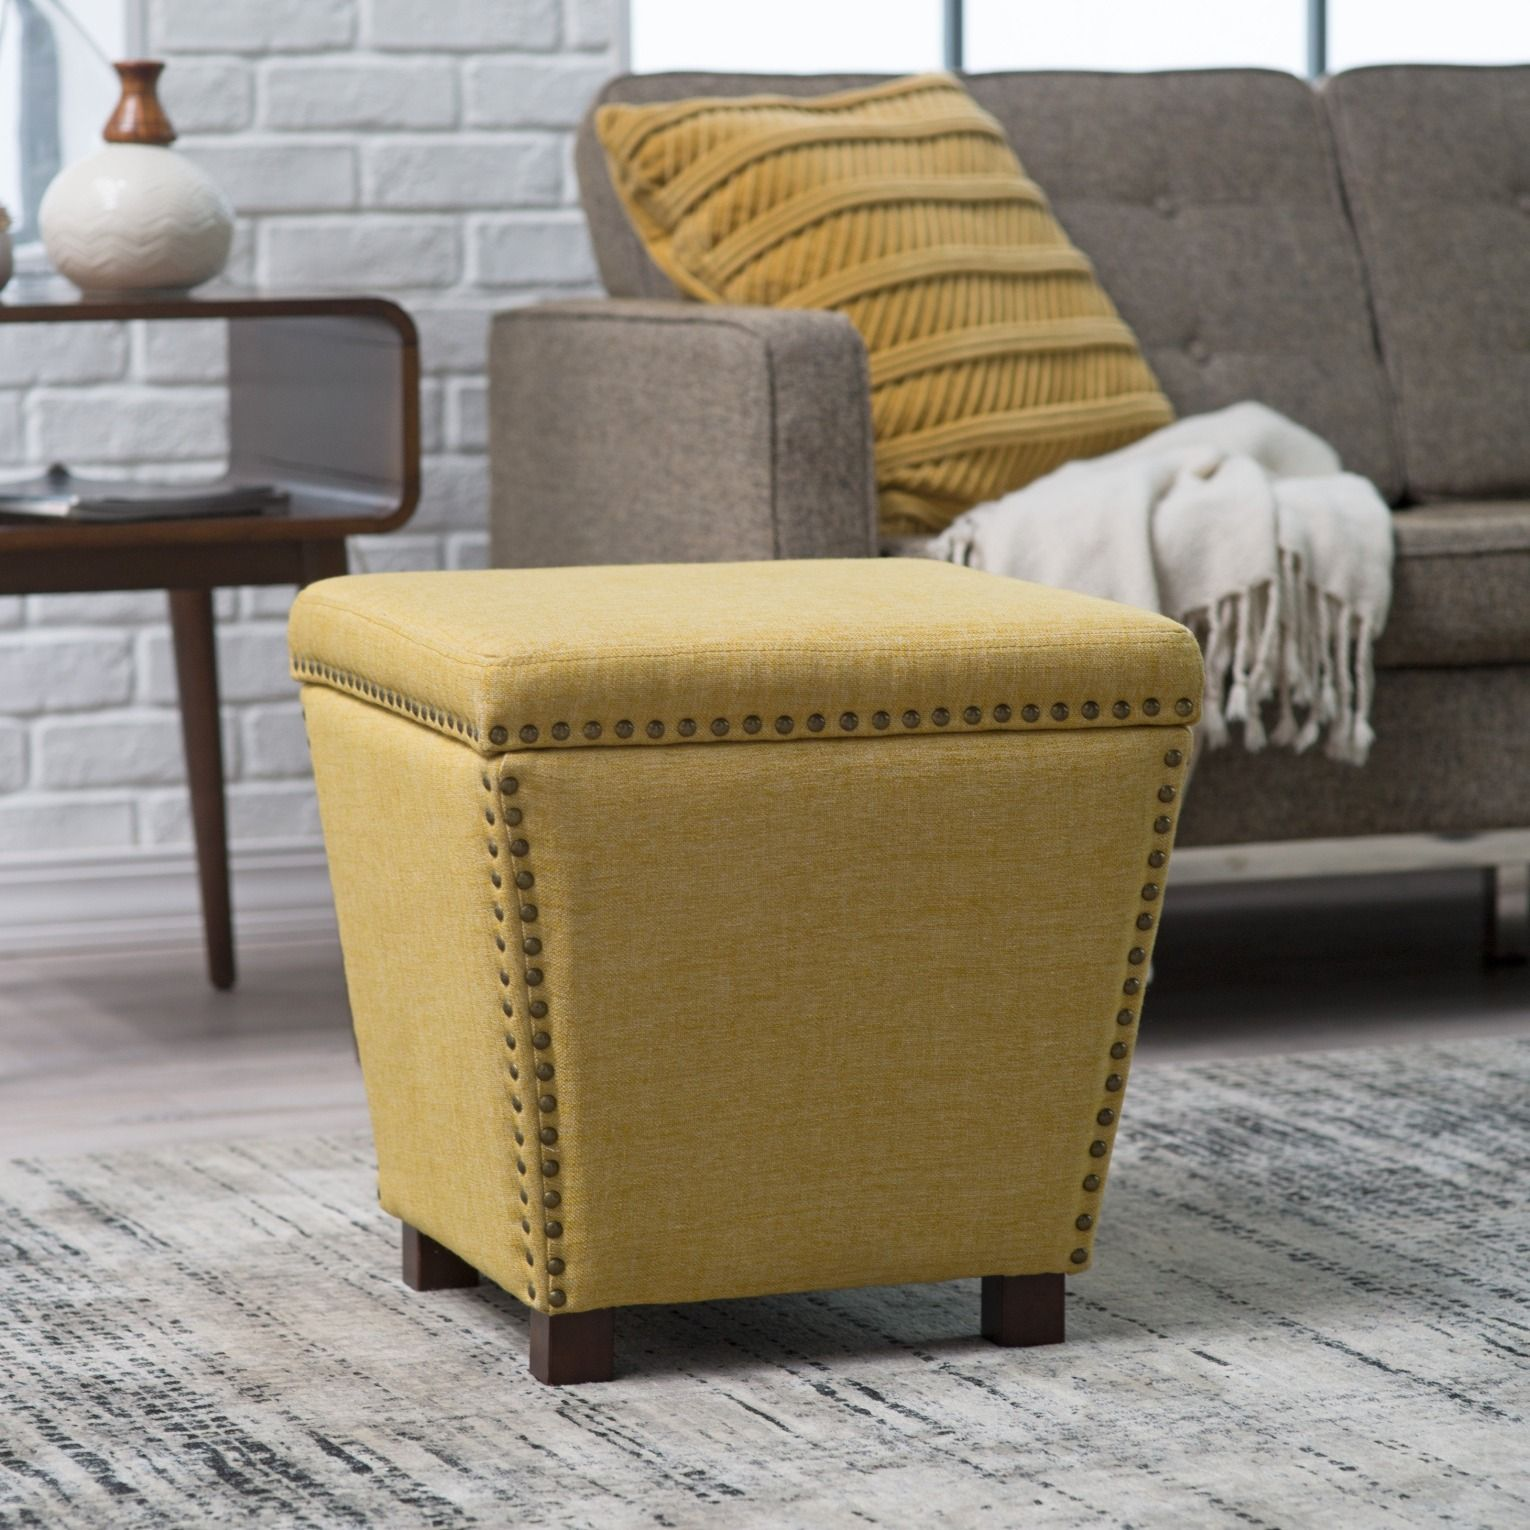 Belham Living Noelle Storage Ottoman with Nailheads - Hayneedle ...